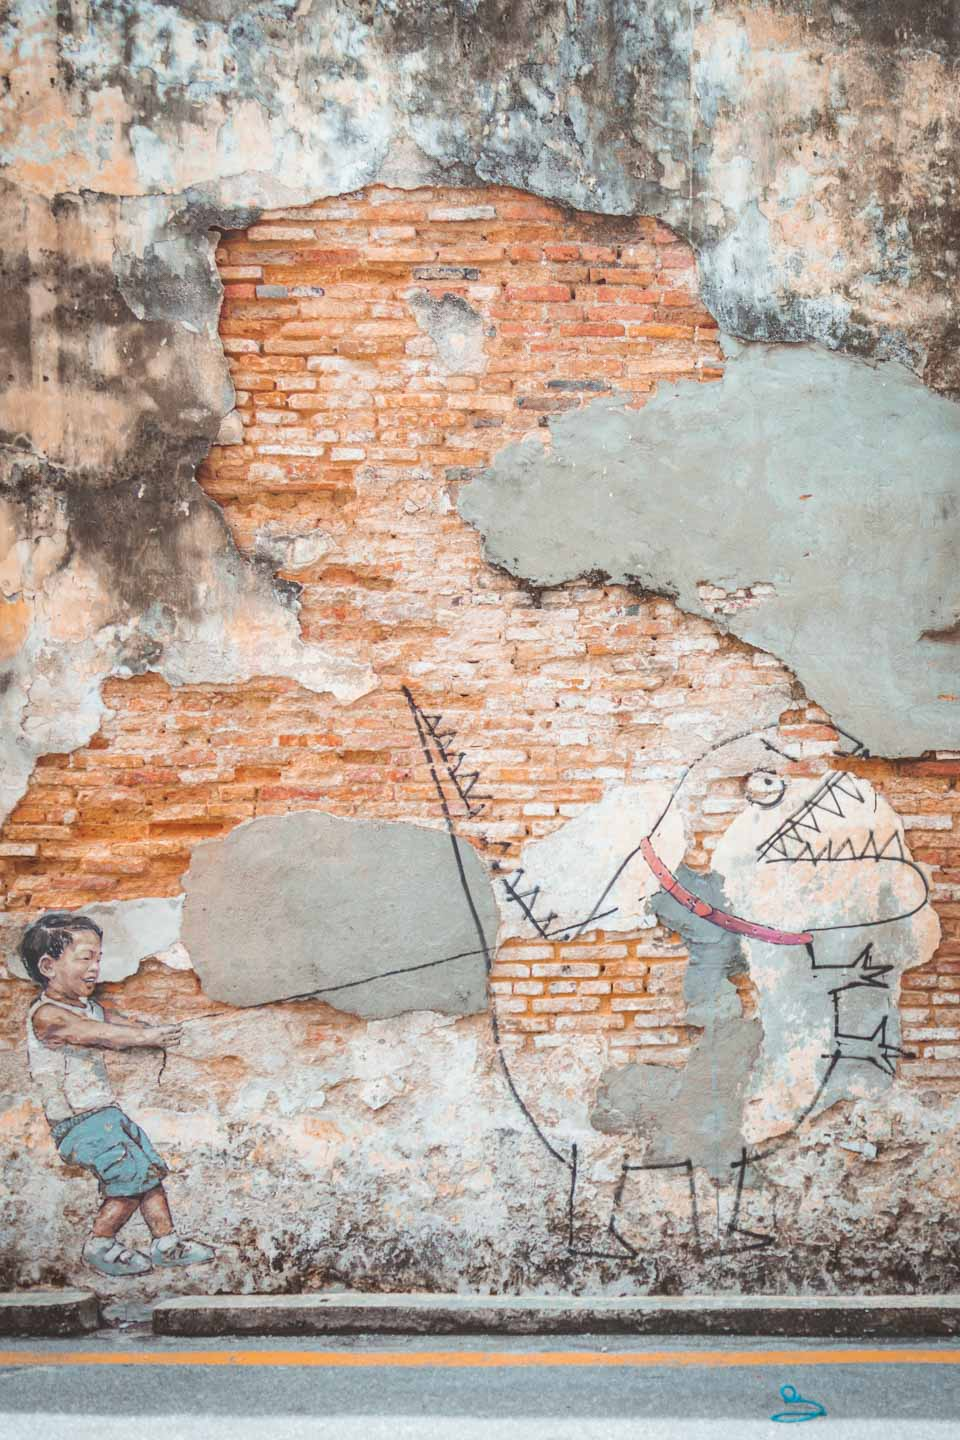 Boy with Pet Dinosaur, Ernest Zacharevic, Penang Street Art, Georgetown